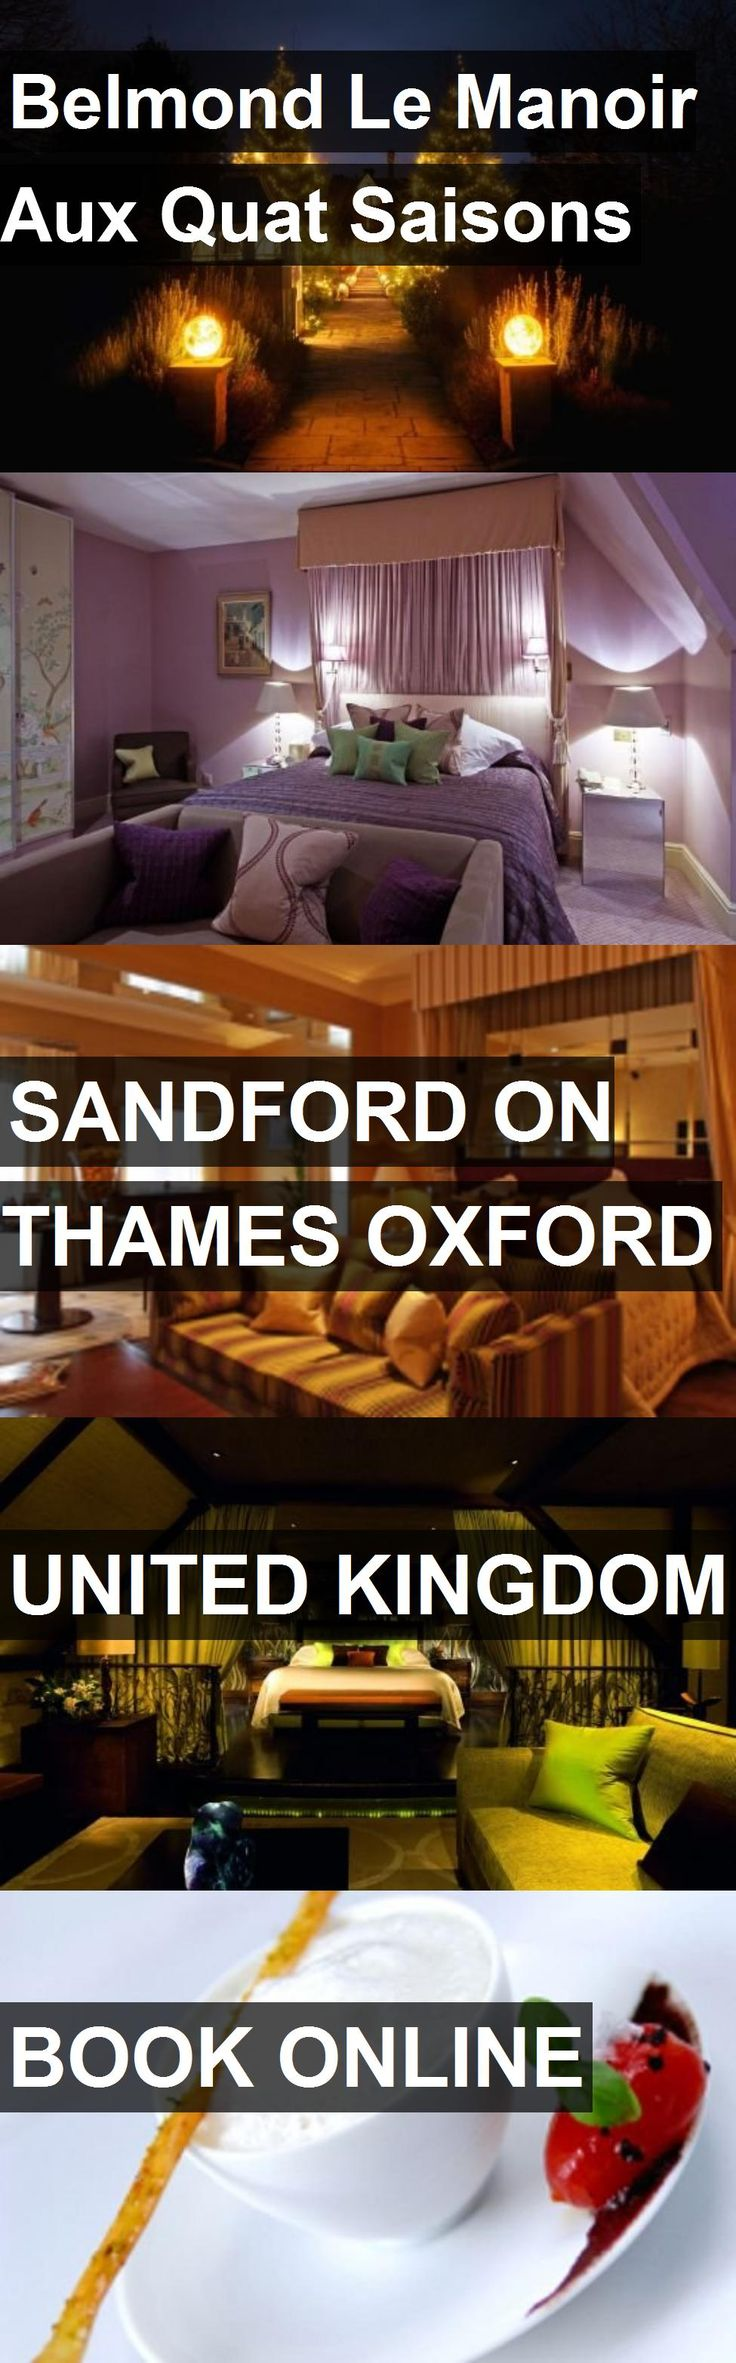 Hotel Belmond Le Manoir Aux Quat Saisons in Sandford on thames Oxford, United Kingdom. For more information, photos, reviews and best prices please follow the link. #UnitedKingdom #SandfordonthamesOxford #travel #vacation #hotel